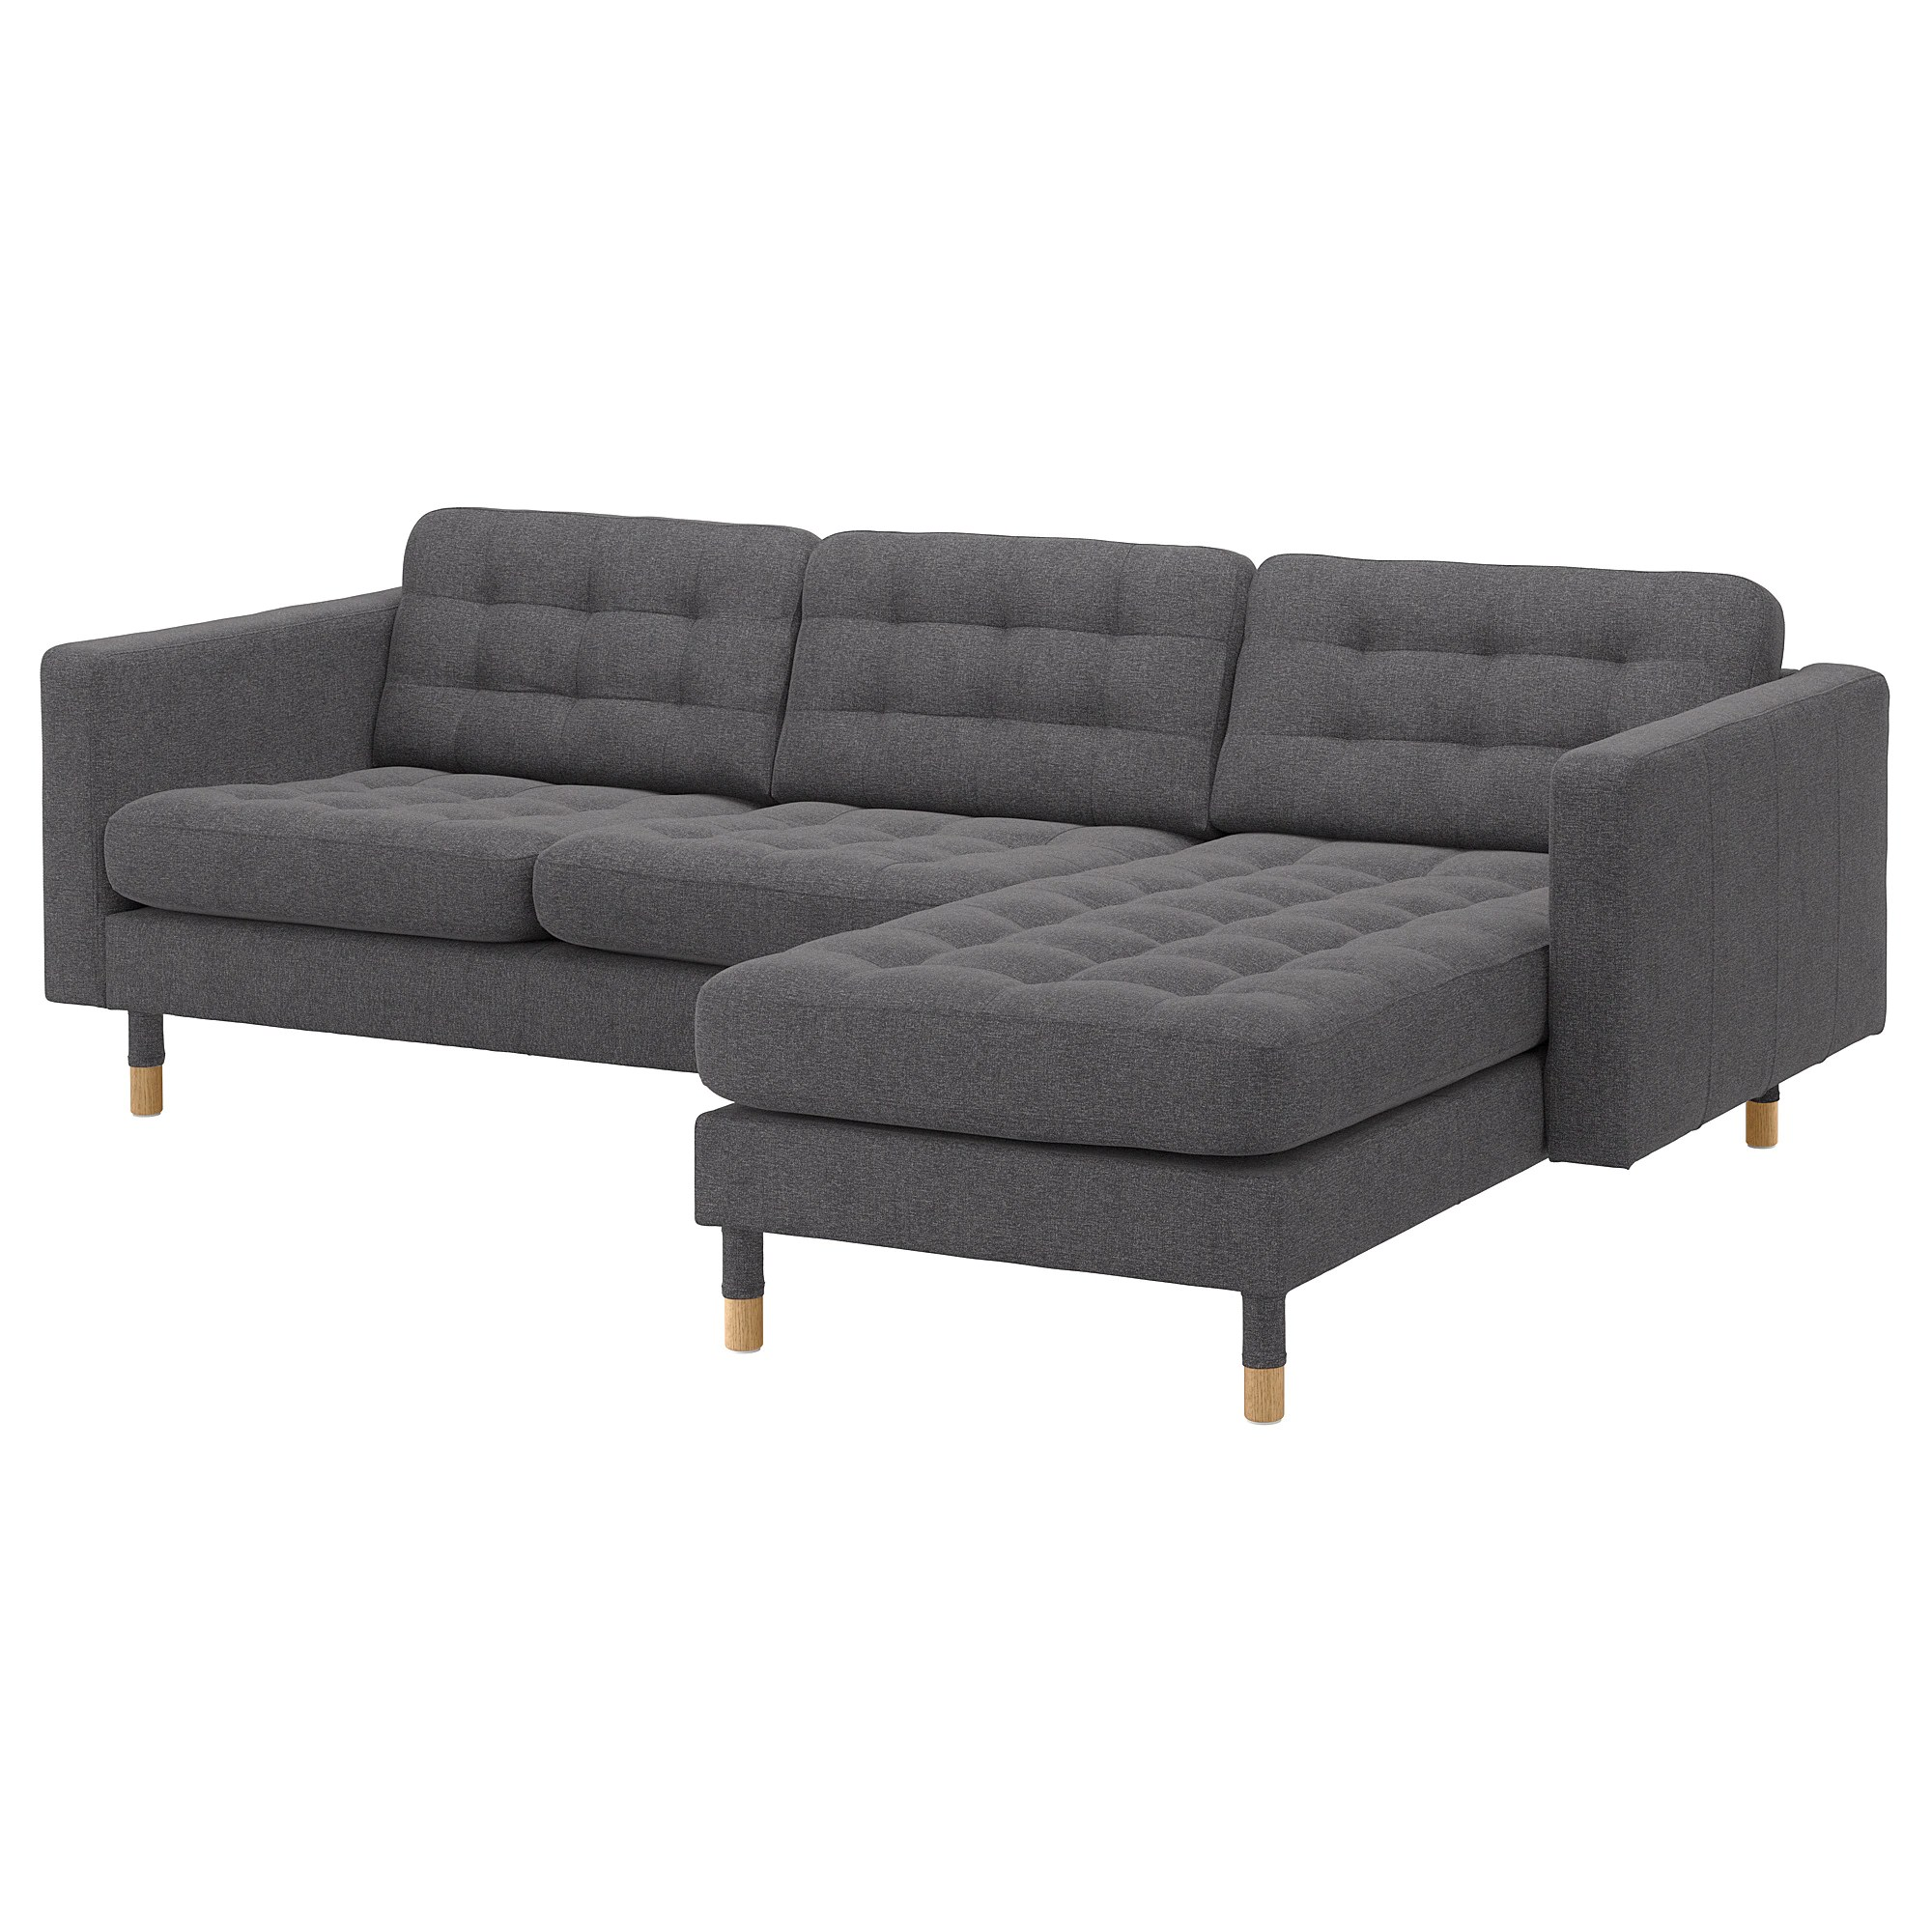 Sofa 60er Landskrona Sofa With Chaise Gunnared Dark Gray Metal